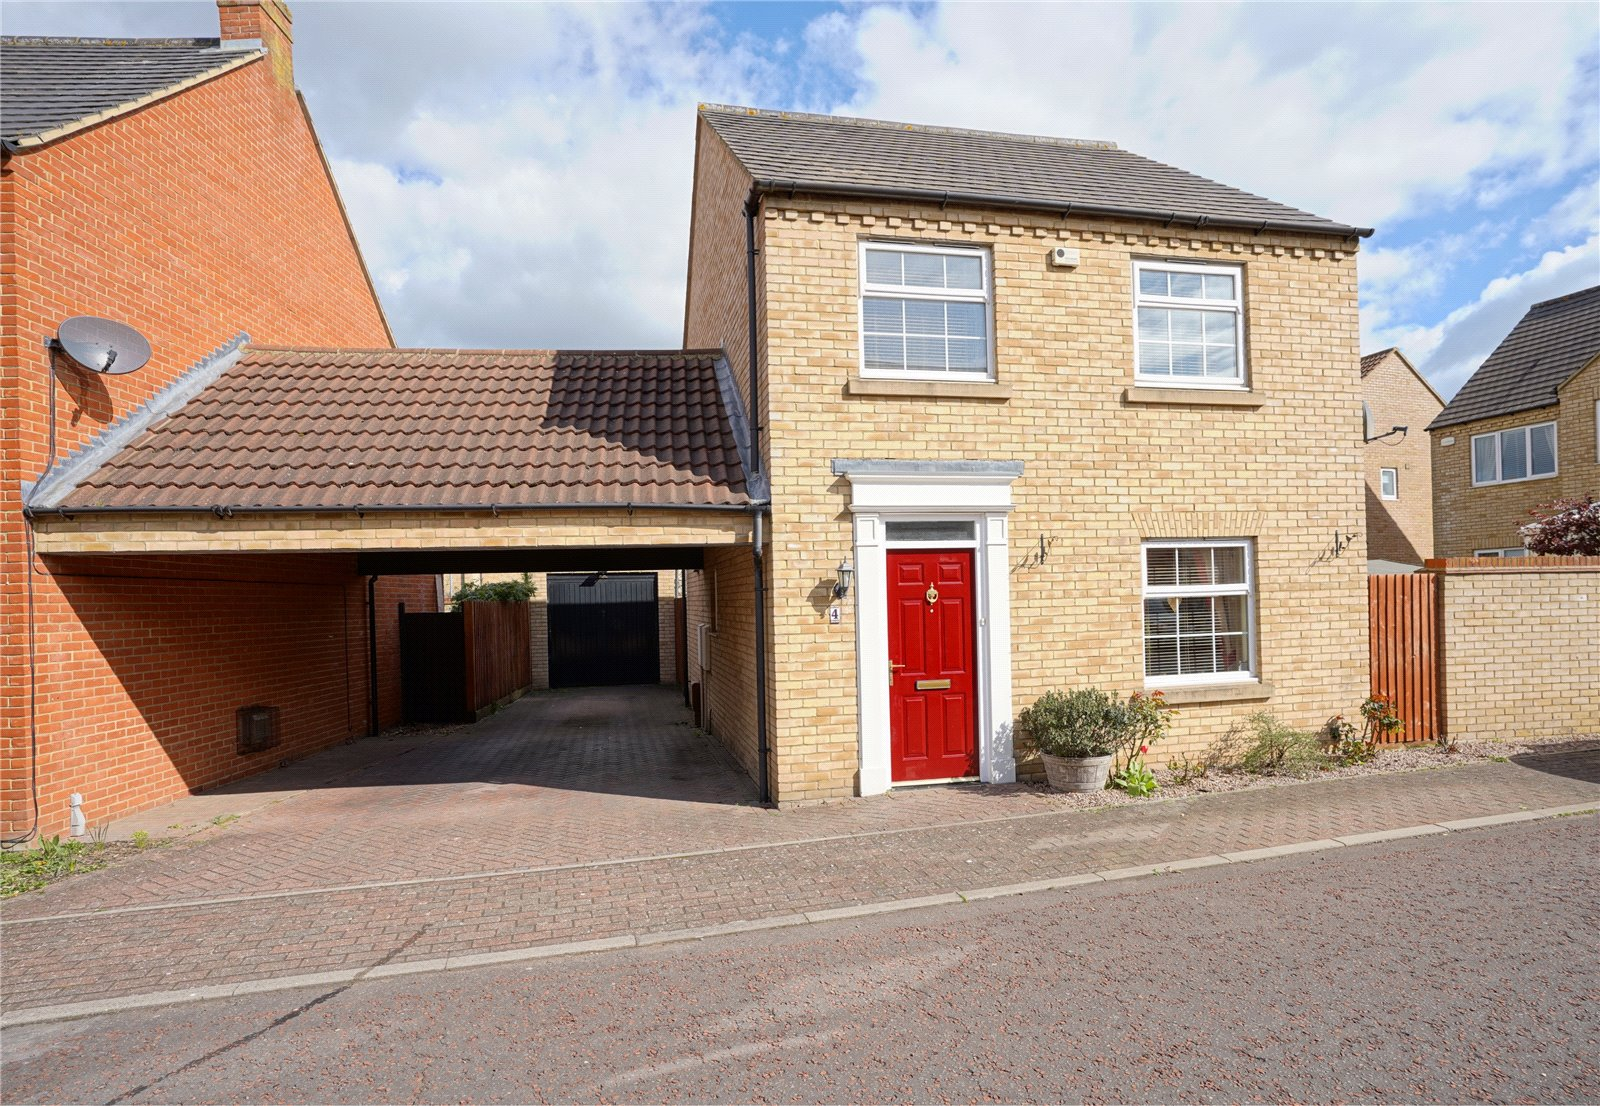 3 bed house for sale in Eynesbury, PE19 2HE, PE19